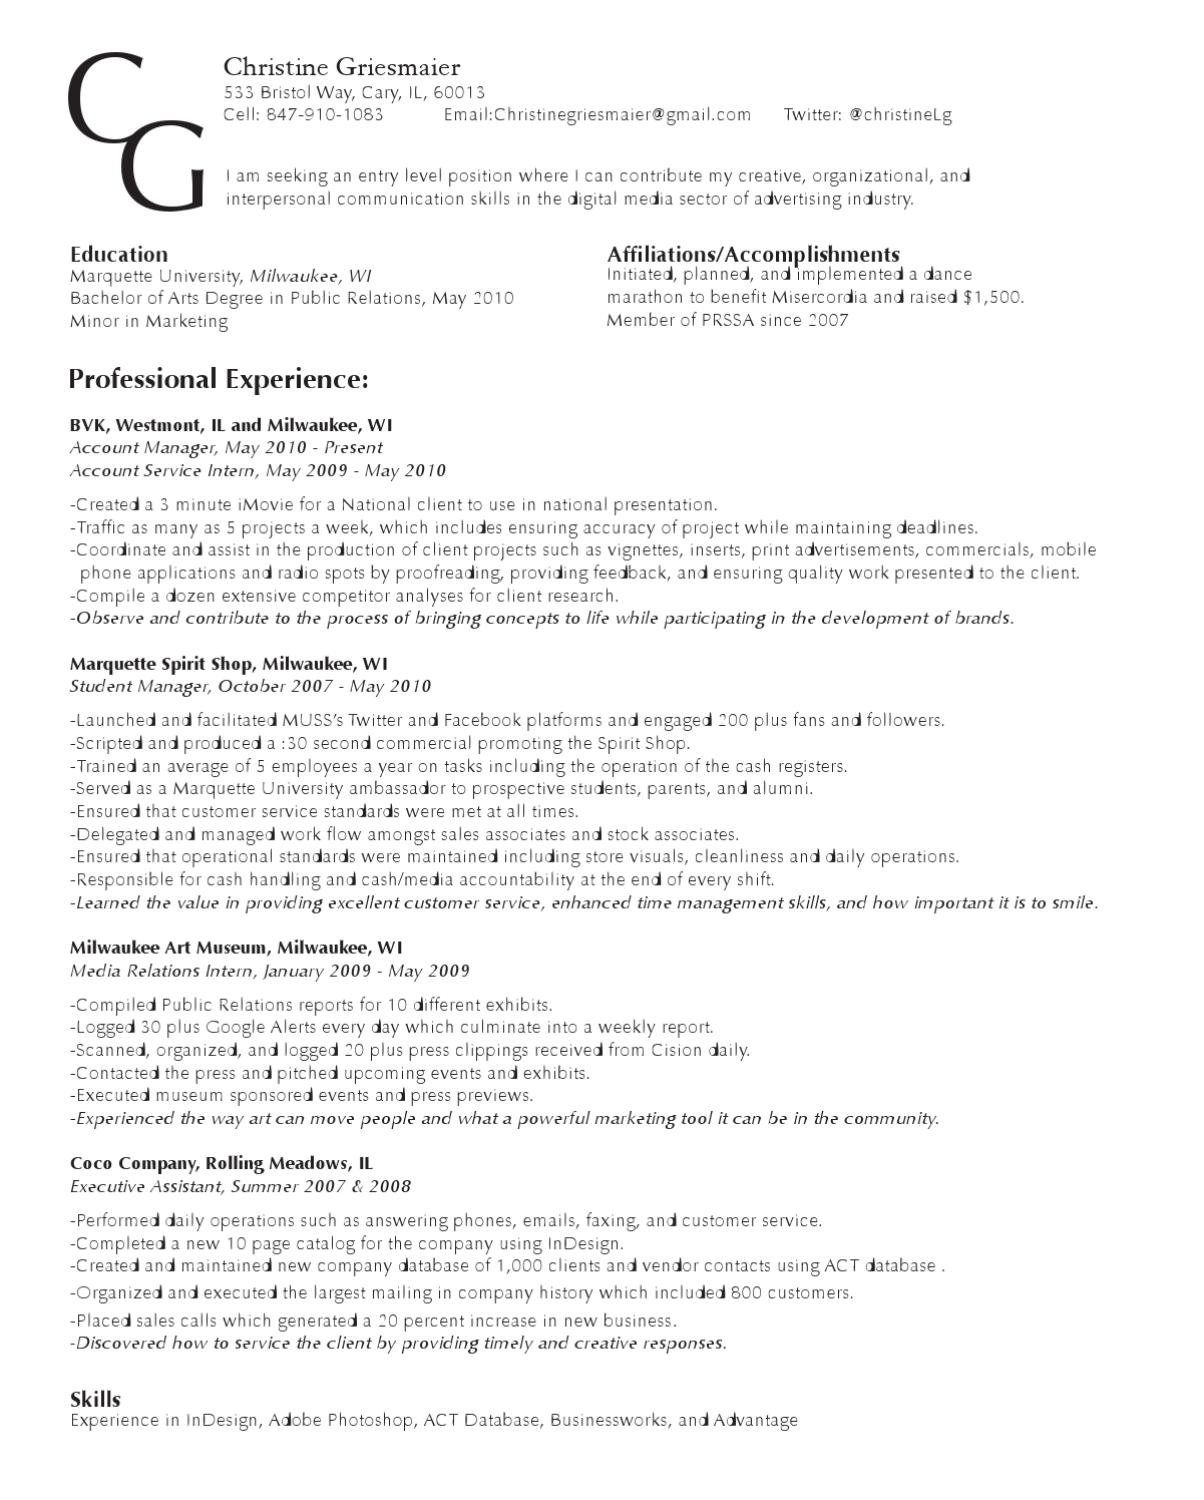 Professional Affiliations On Resumes: Resume By Christine Griesmaier